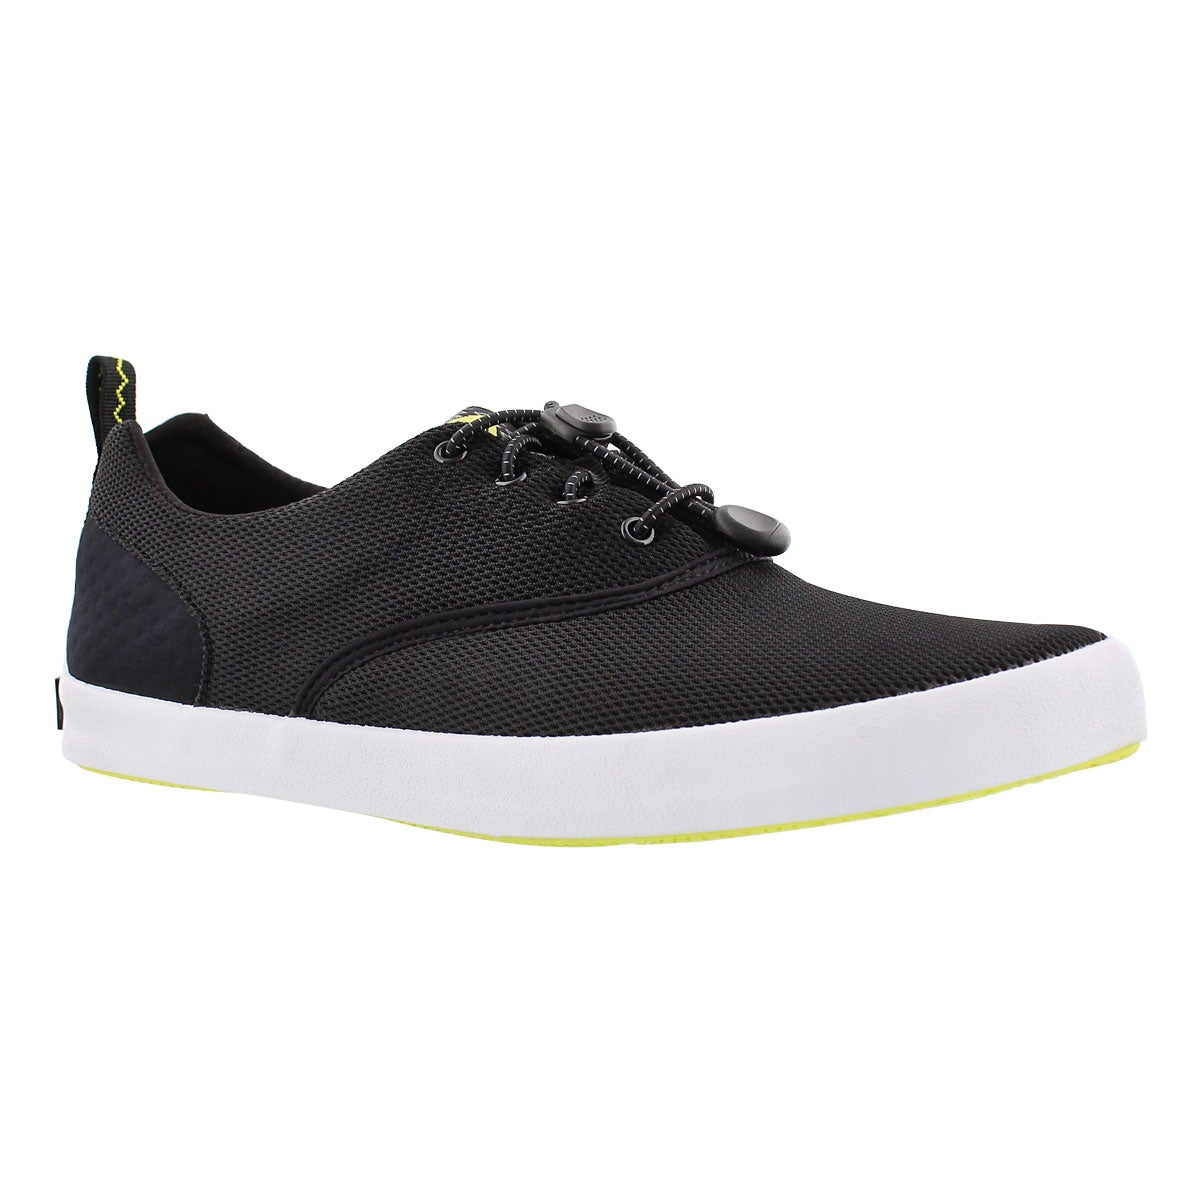 Men's FLEX DECK black CVO sneakers